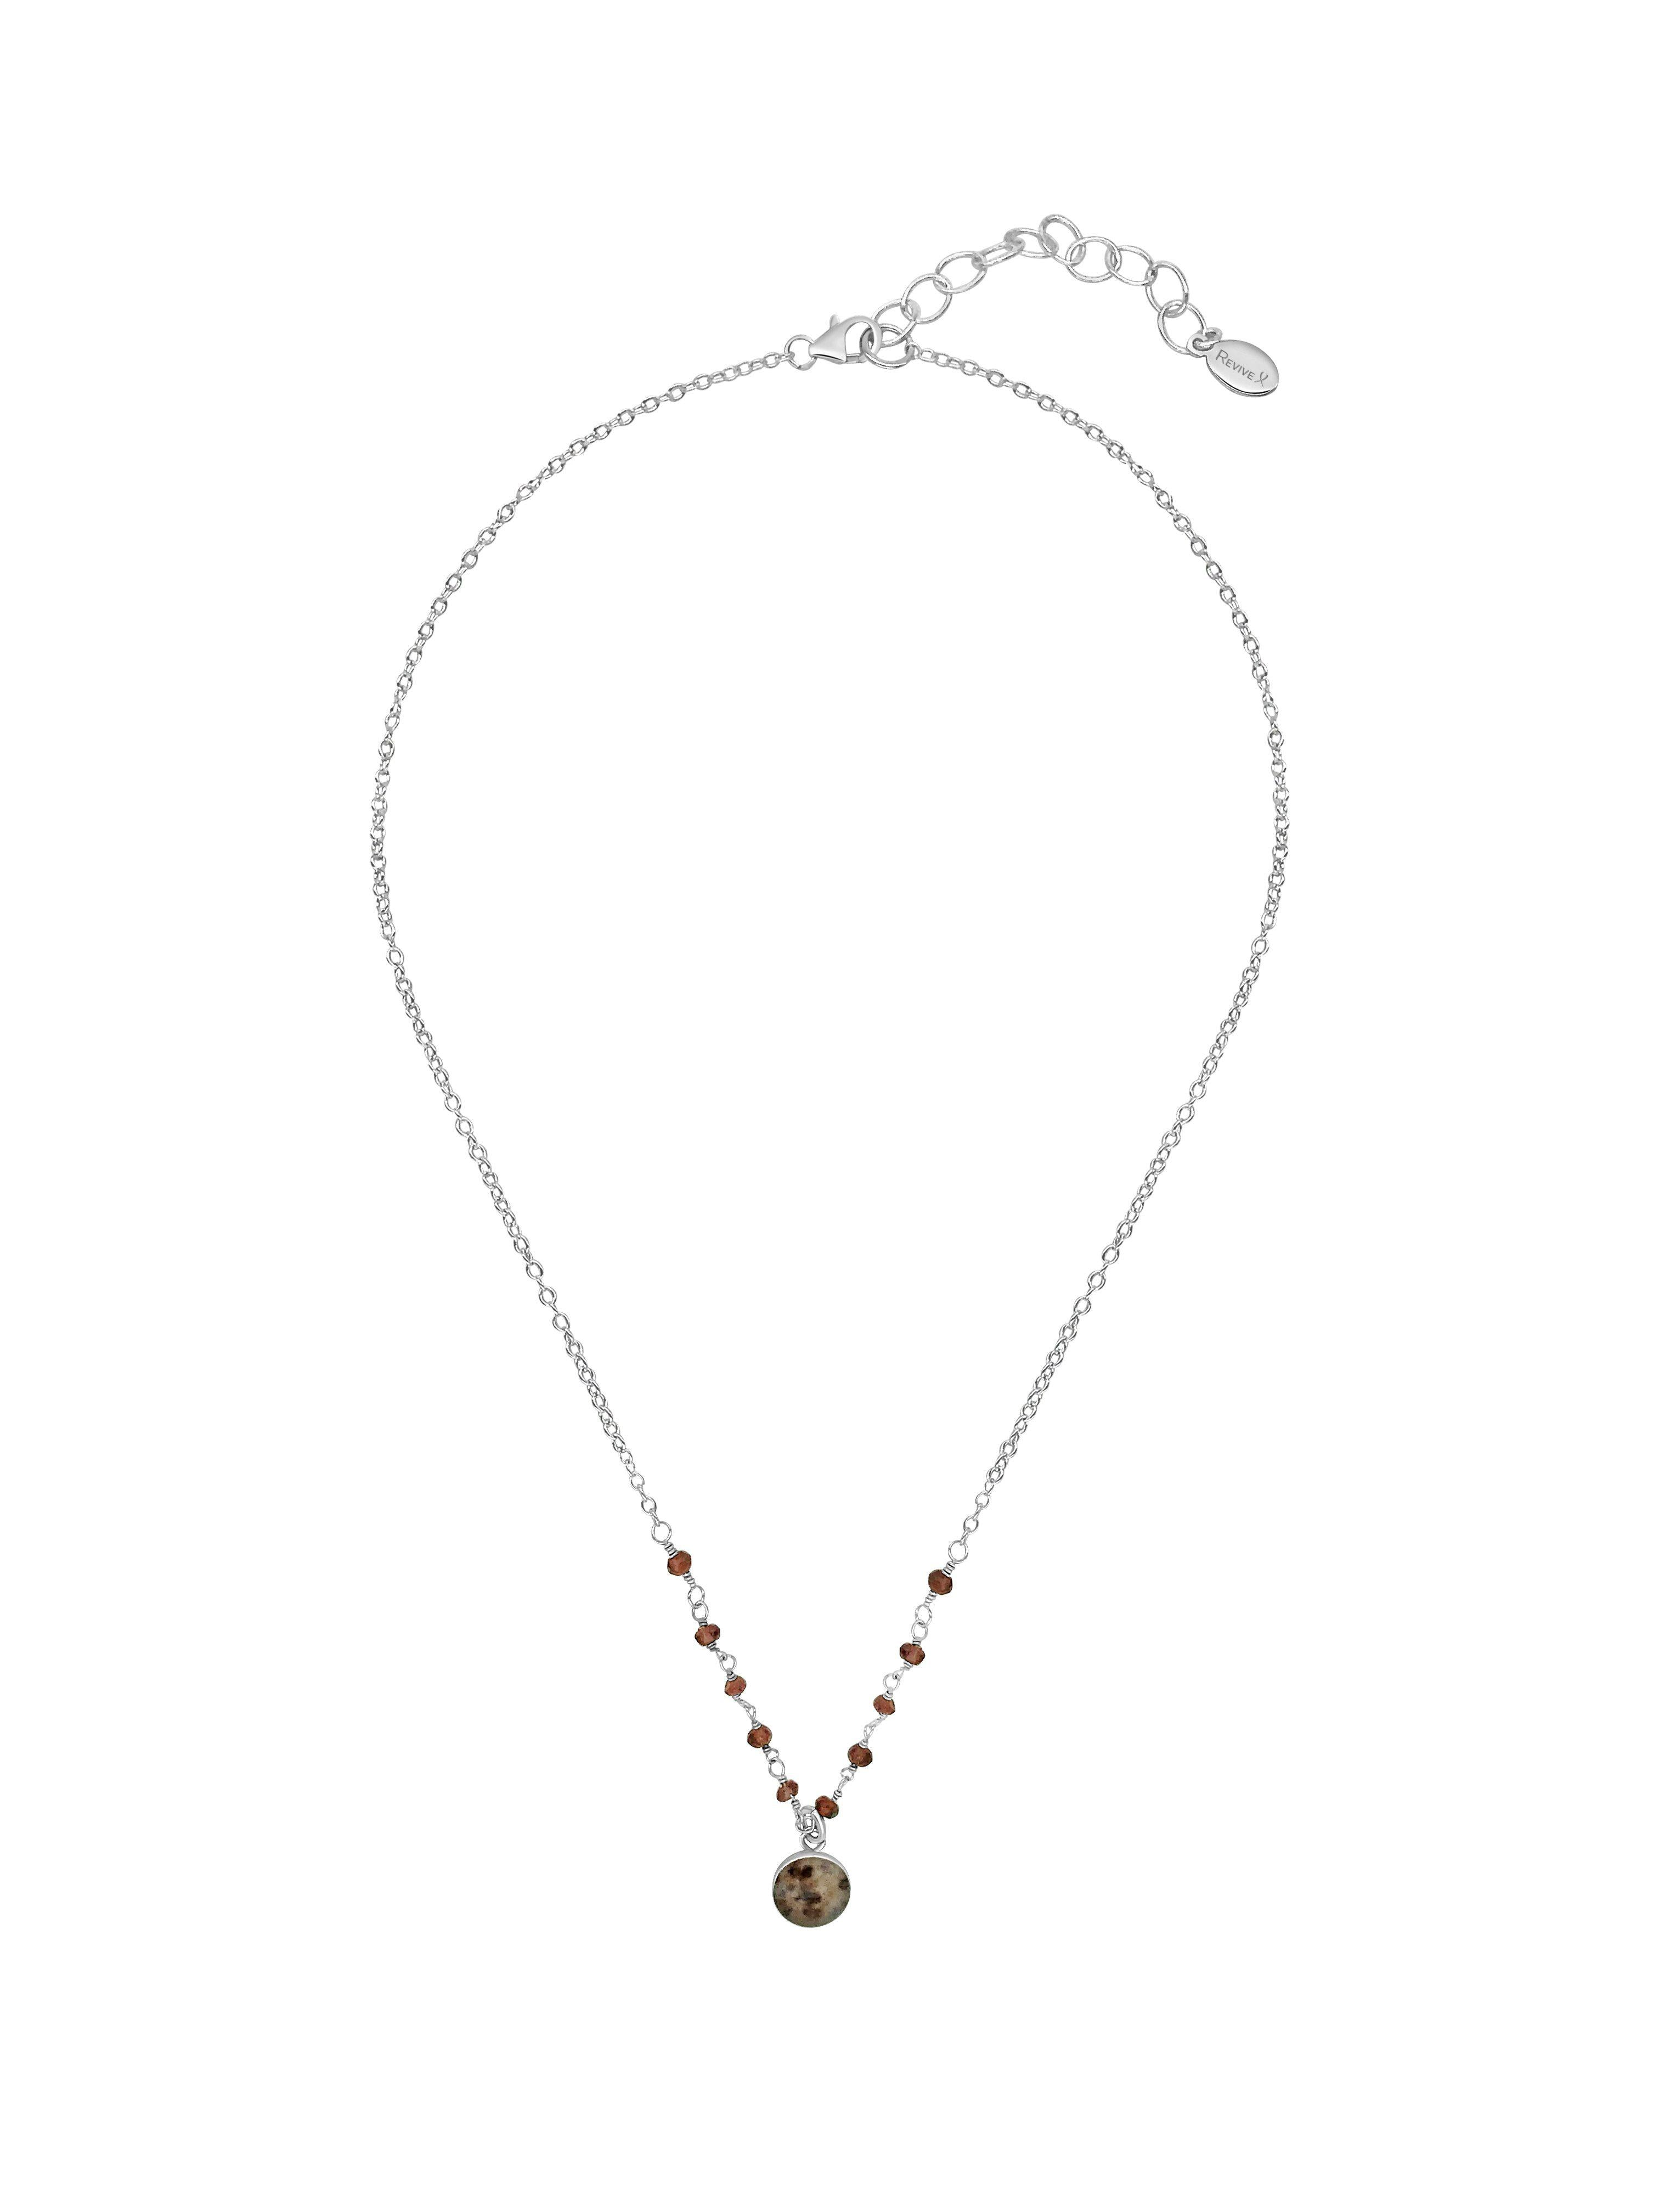 16 inch to 18 inch adjustable sterling silver chain with faceted garnet stones across the front with a small round brown, beige and maroon pendant of a multiple sclerosis cell image in resin hanging from the center